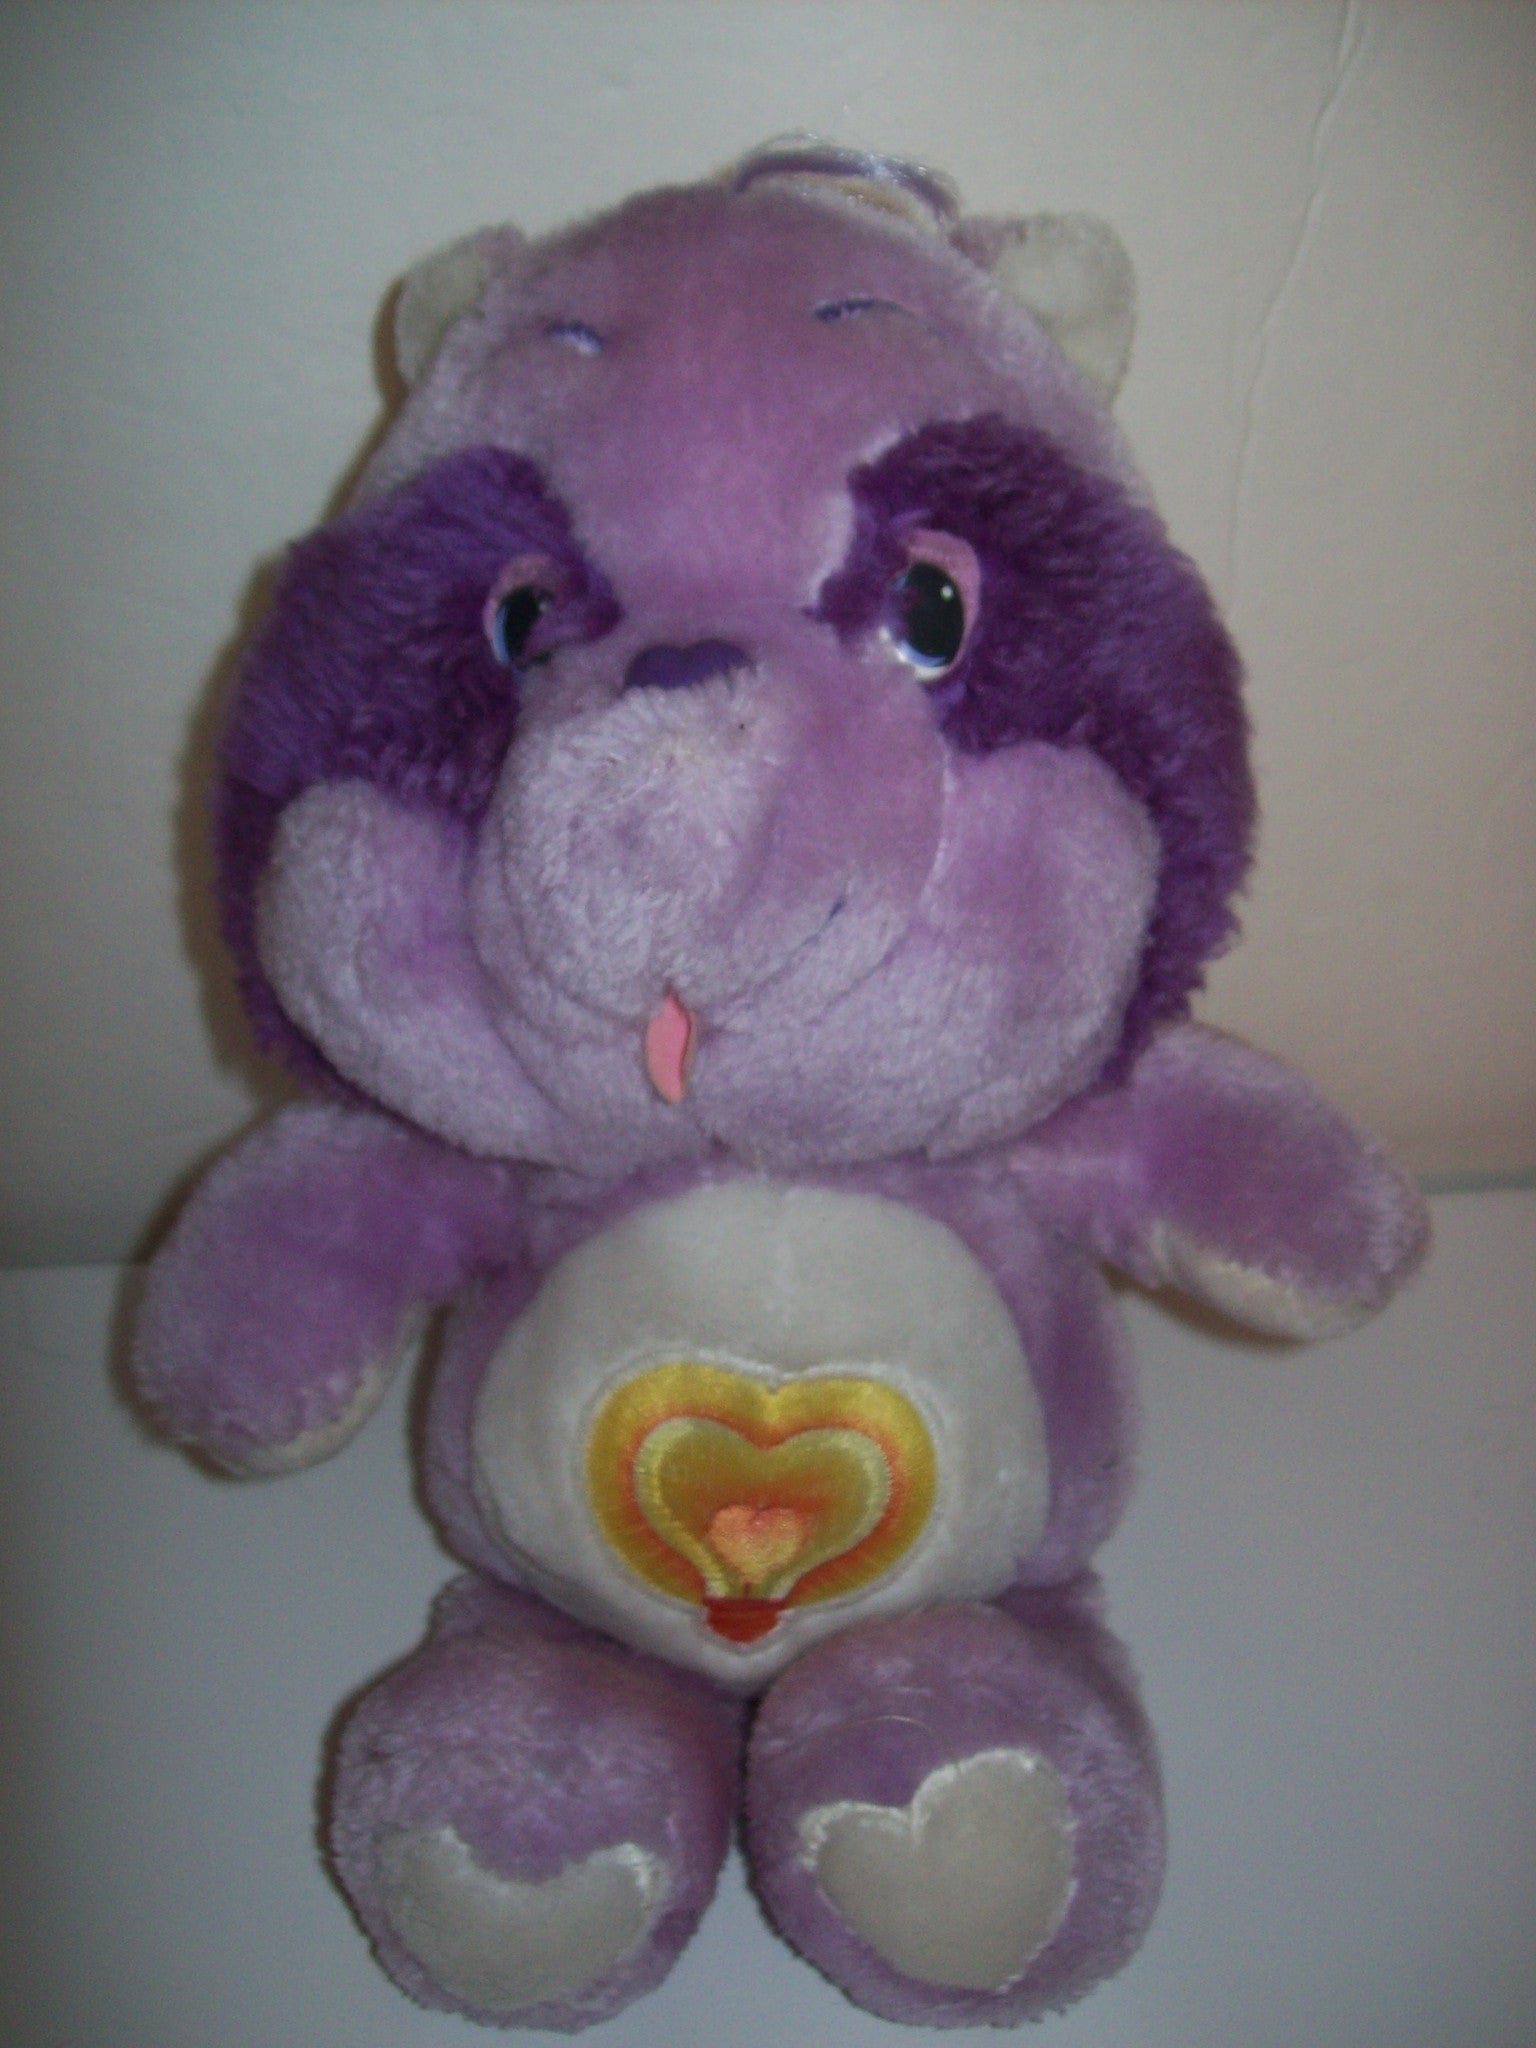 Care Bear Cousins Bright Heart Raccoon - We Got Character